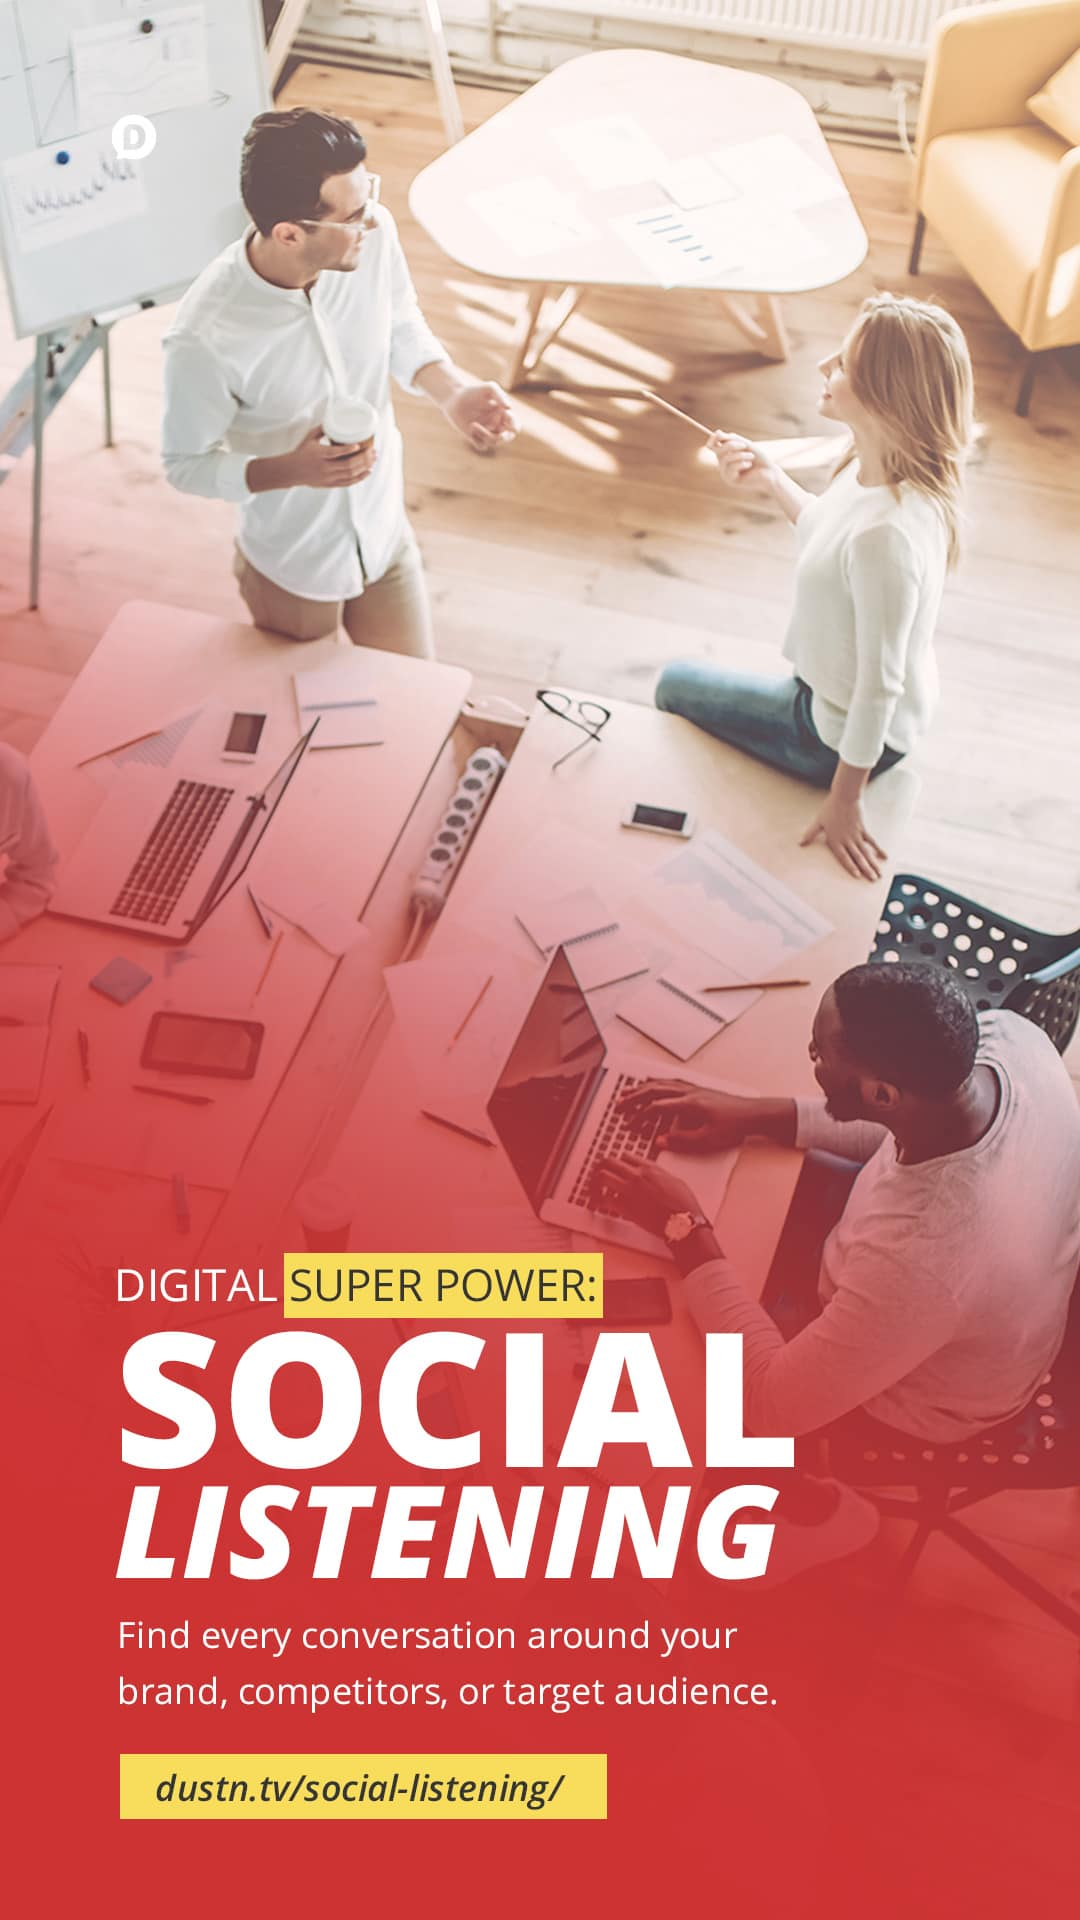 There are conversations happening online about you and your business. Social Listening is like having Superman-like hearing for those online conversations. Smart bloggers and marketers know how to leverage social listening for growing their brand, and keeping an eye on the competition. #marketing #contentmarketing #socialmediamarketing #business